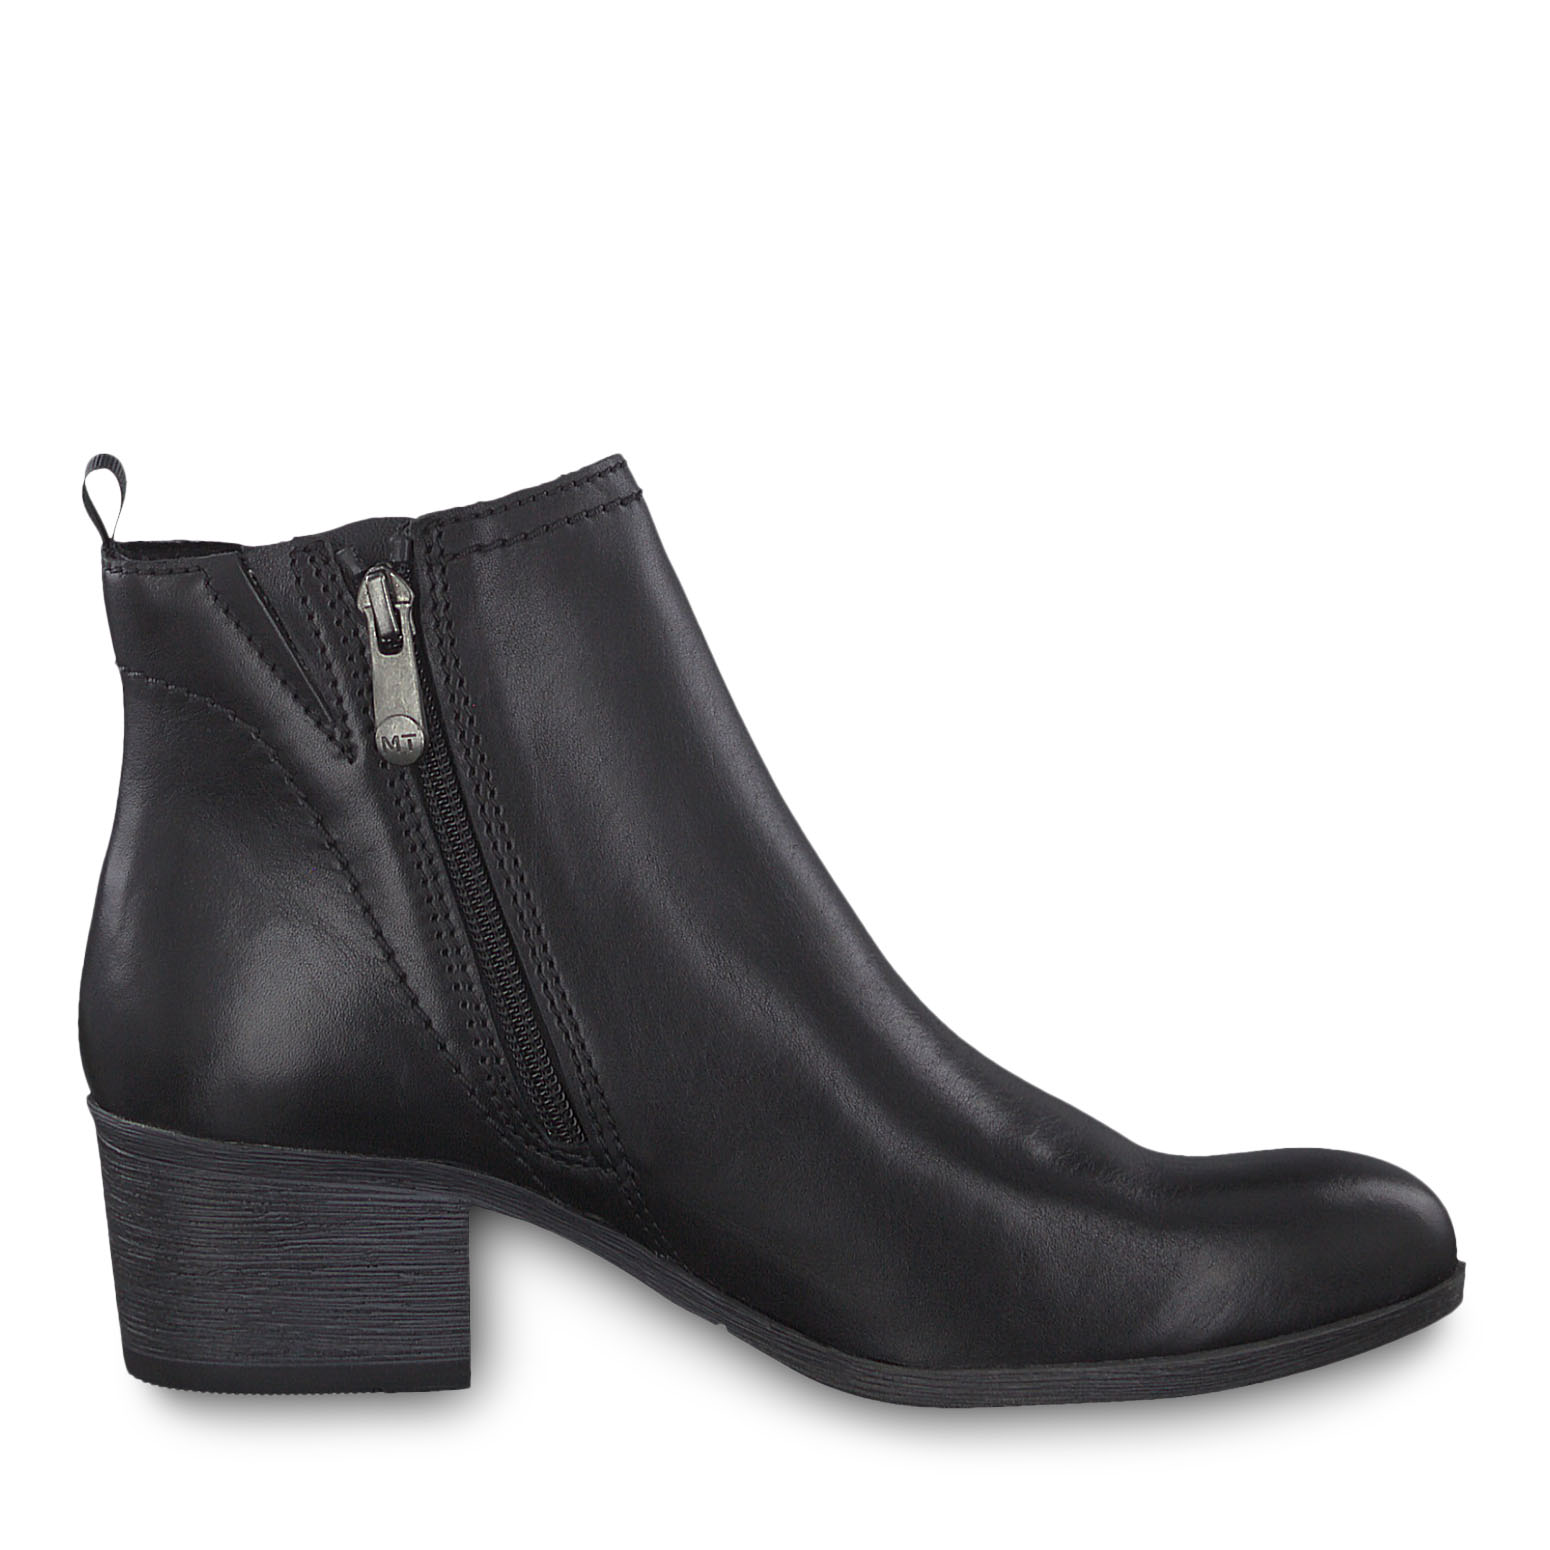 Bottine en cuir - noir, BLACK ANTIC, hi-res